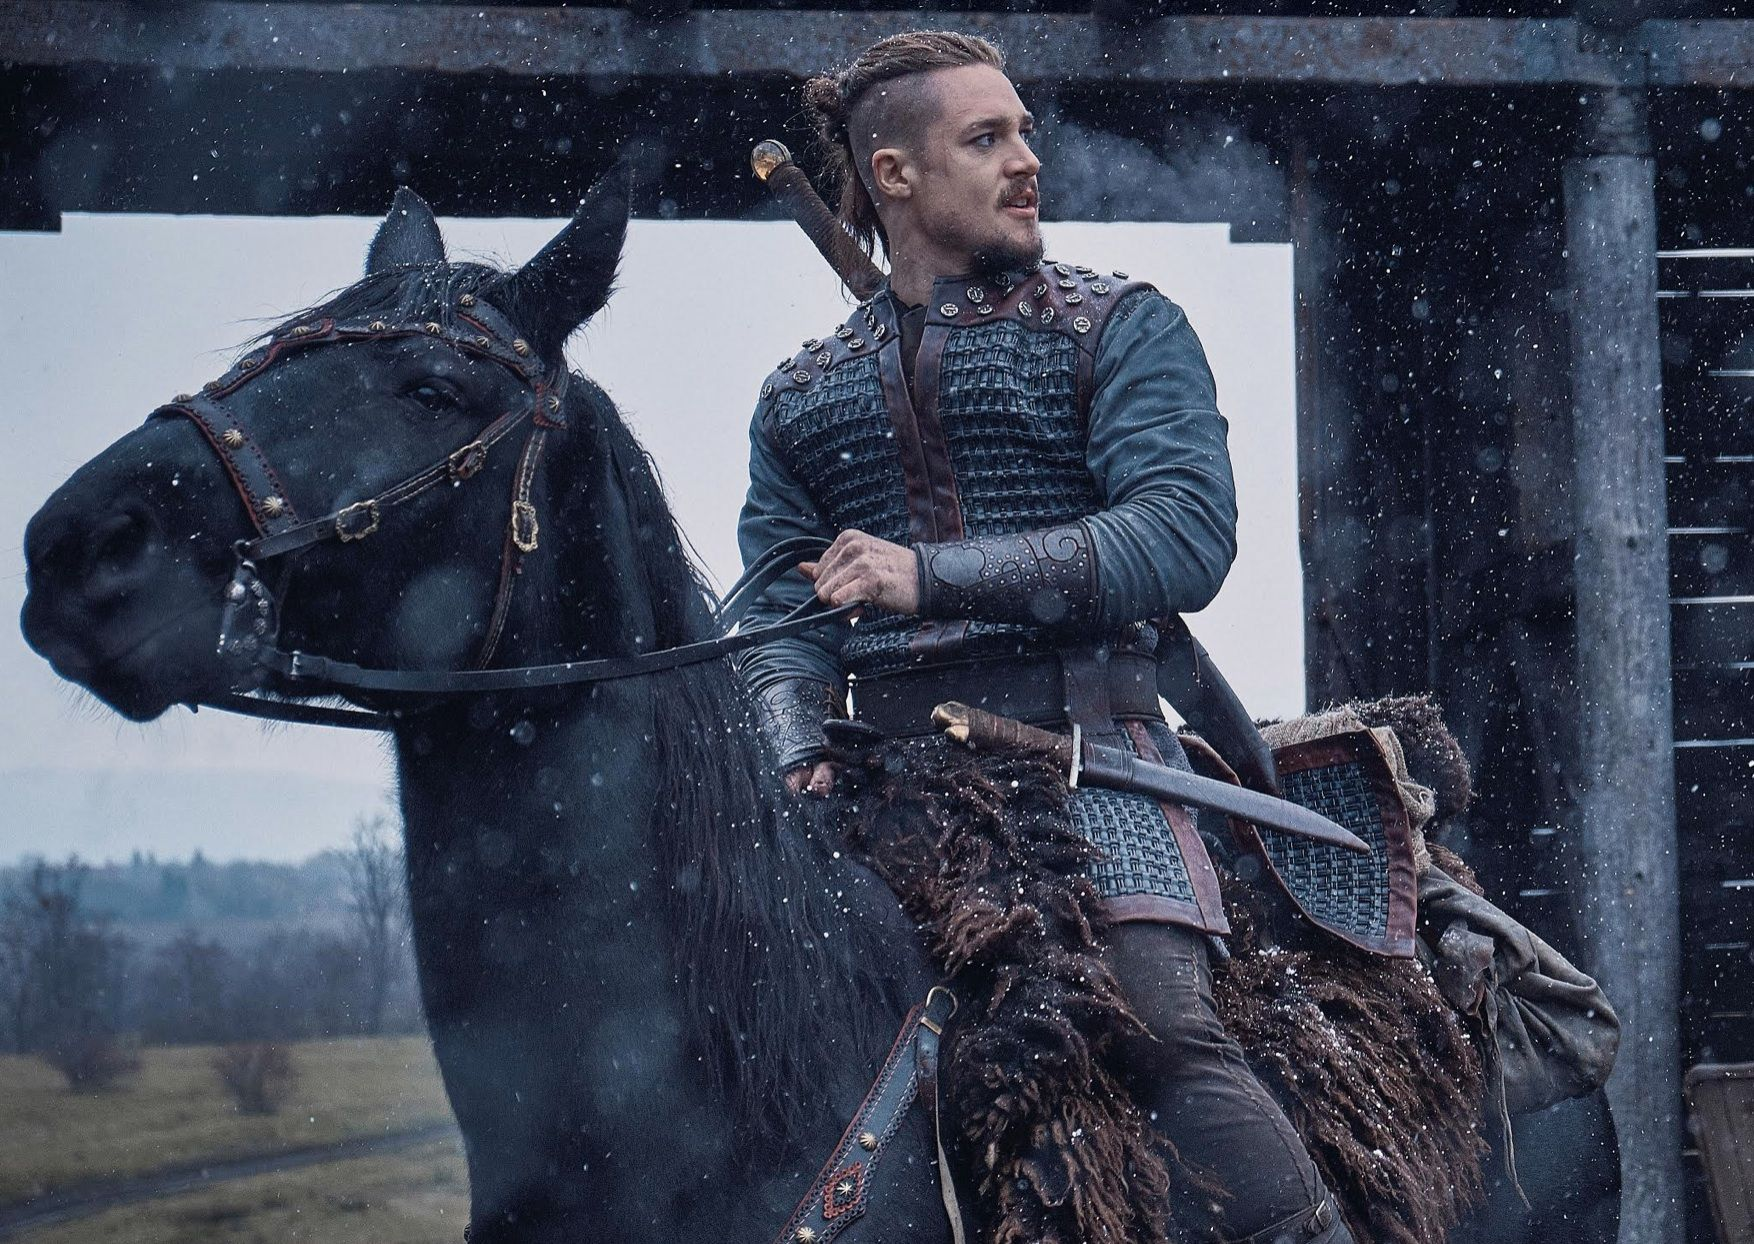 The Last Kingdom season 5 - Release date on Netflix and more